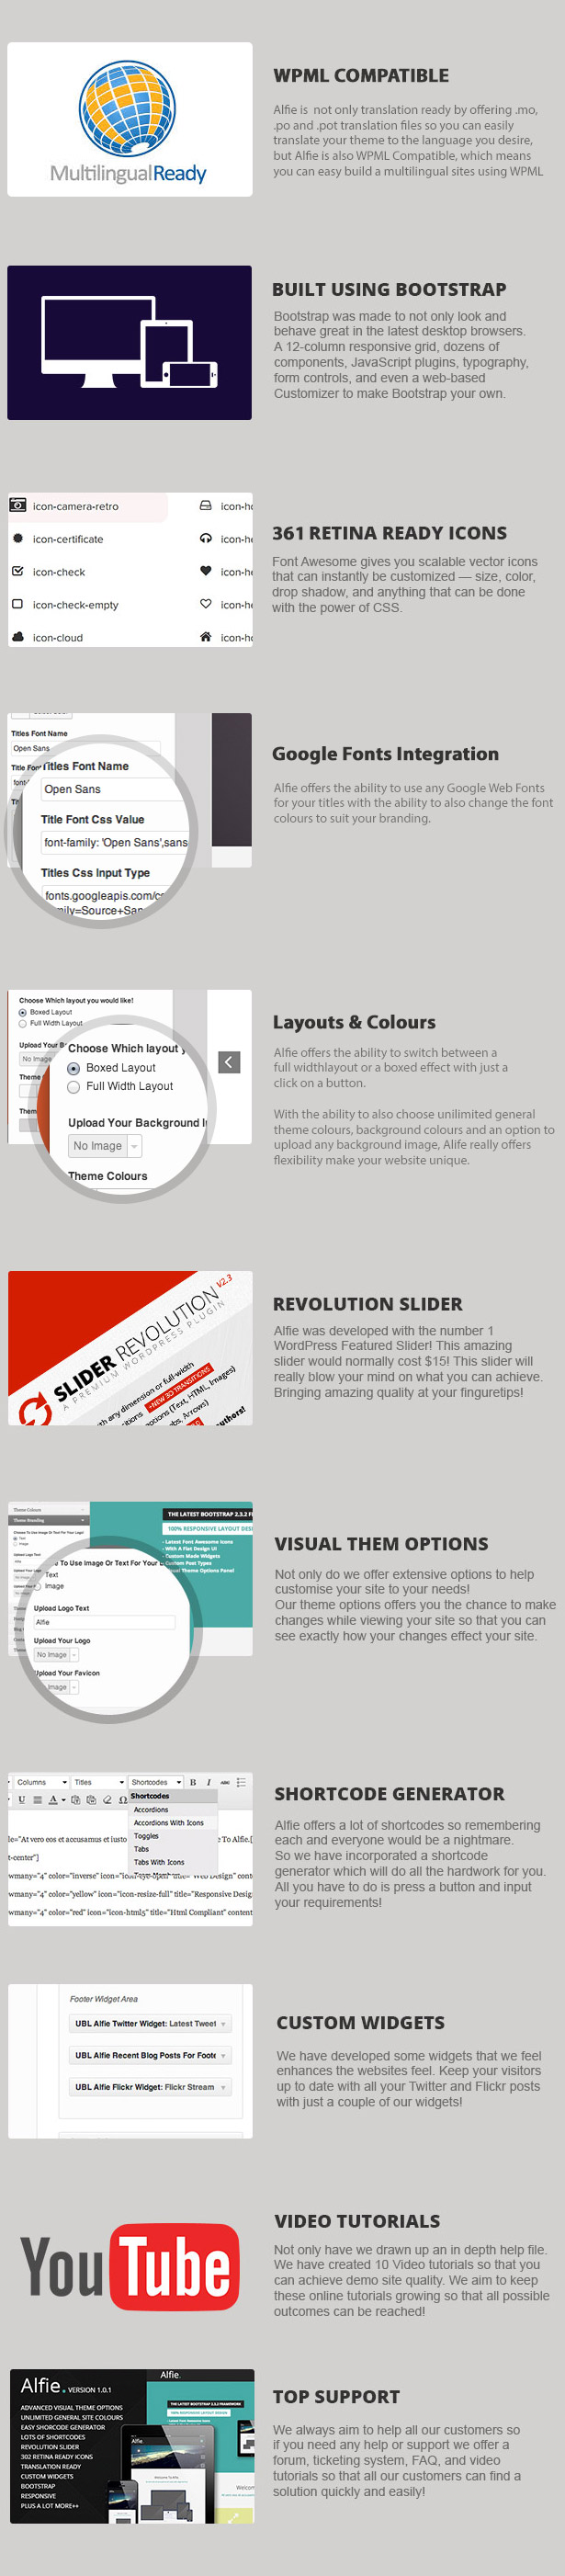 Alfie The Responsive Bootstrap WordPress Theme